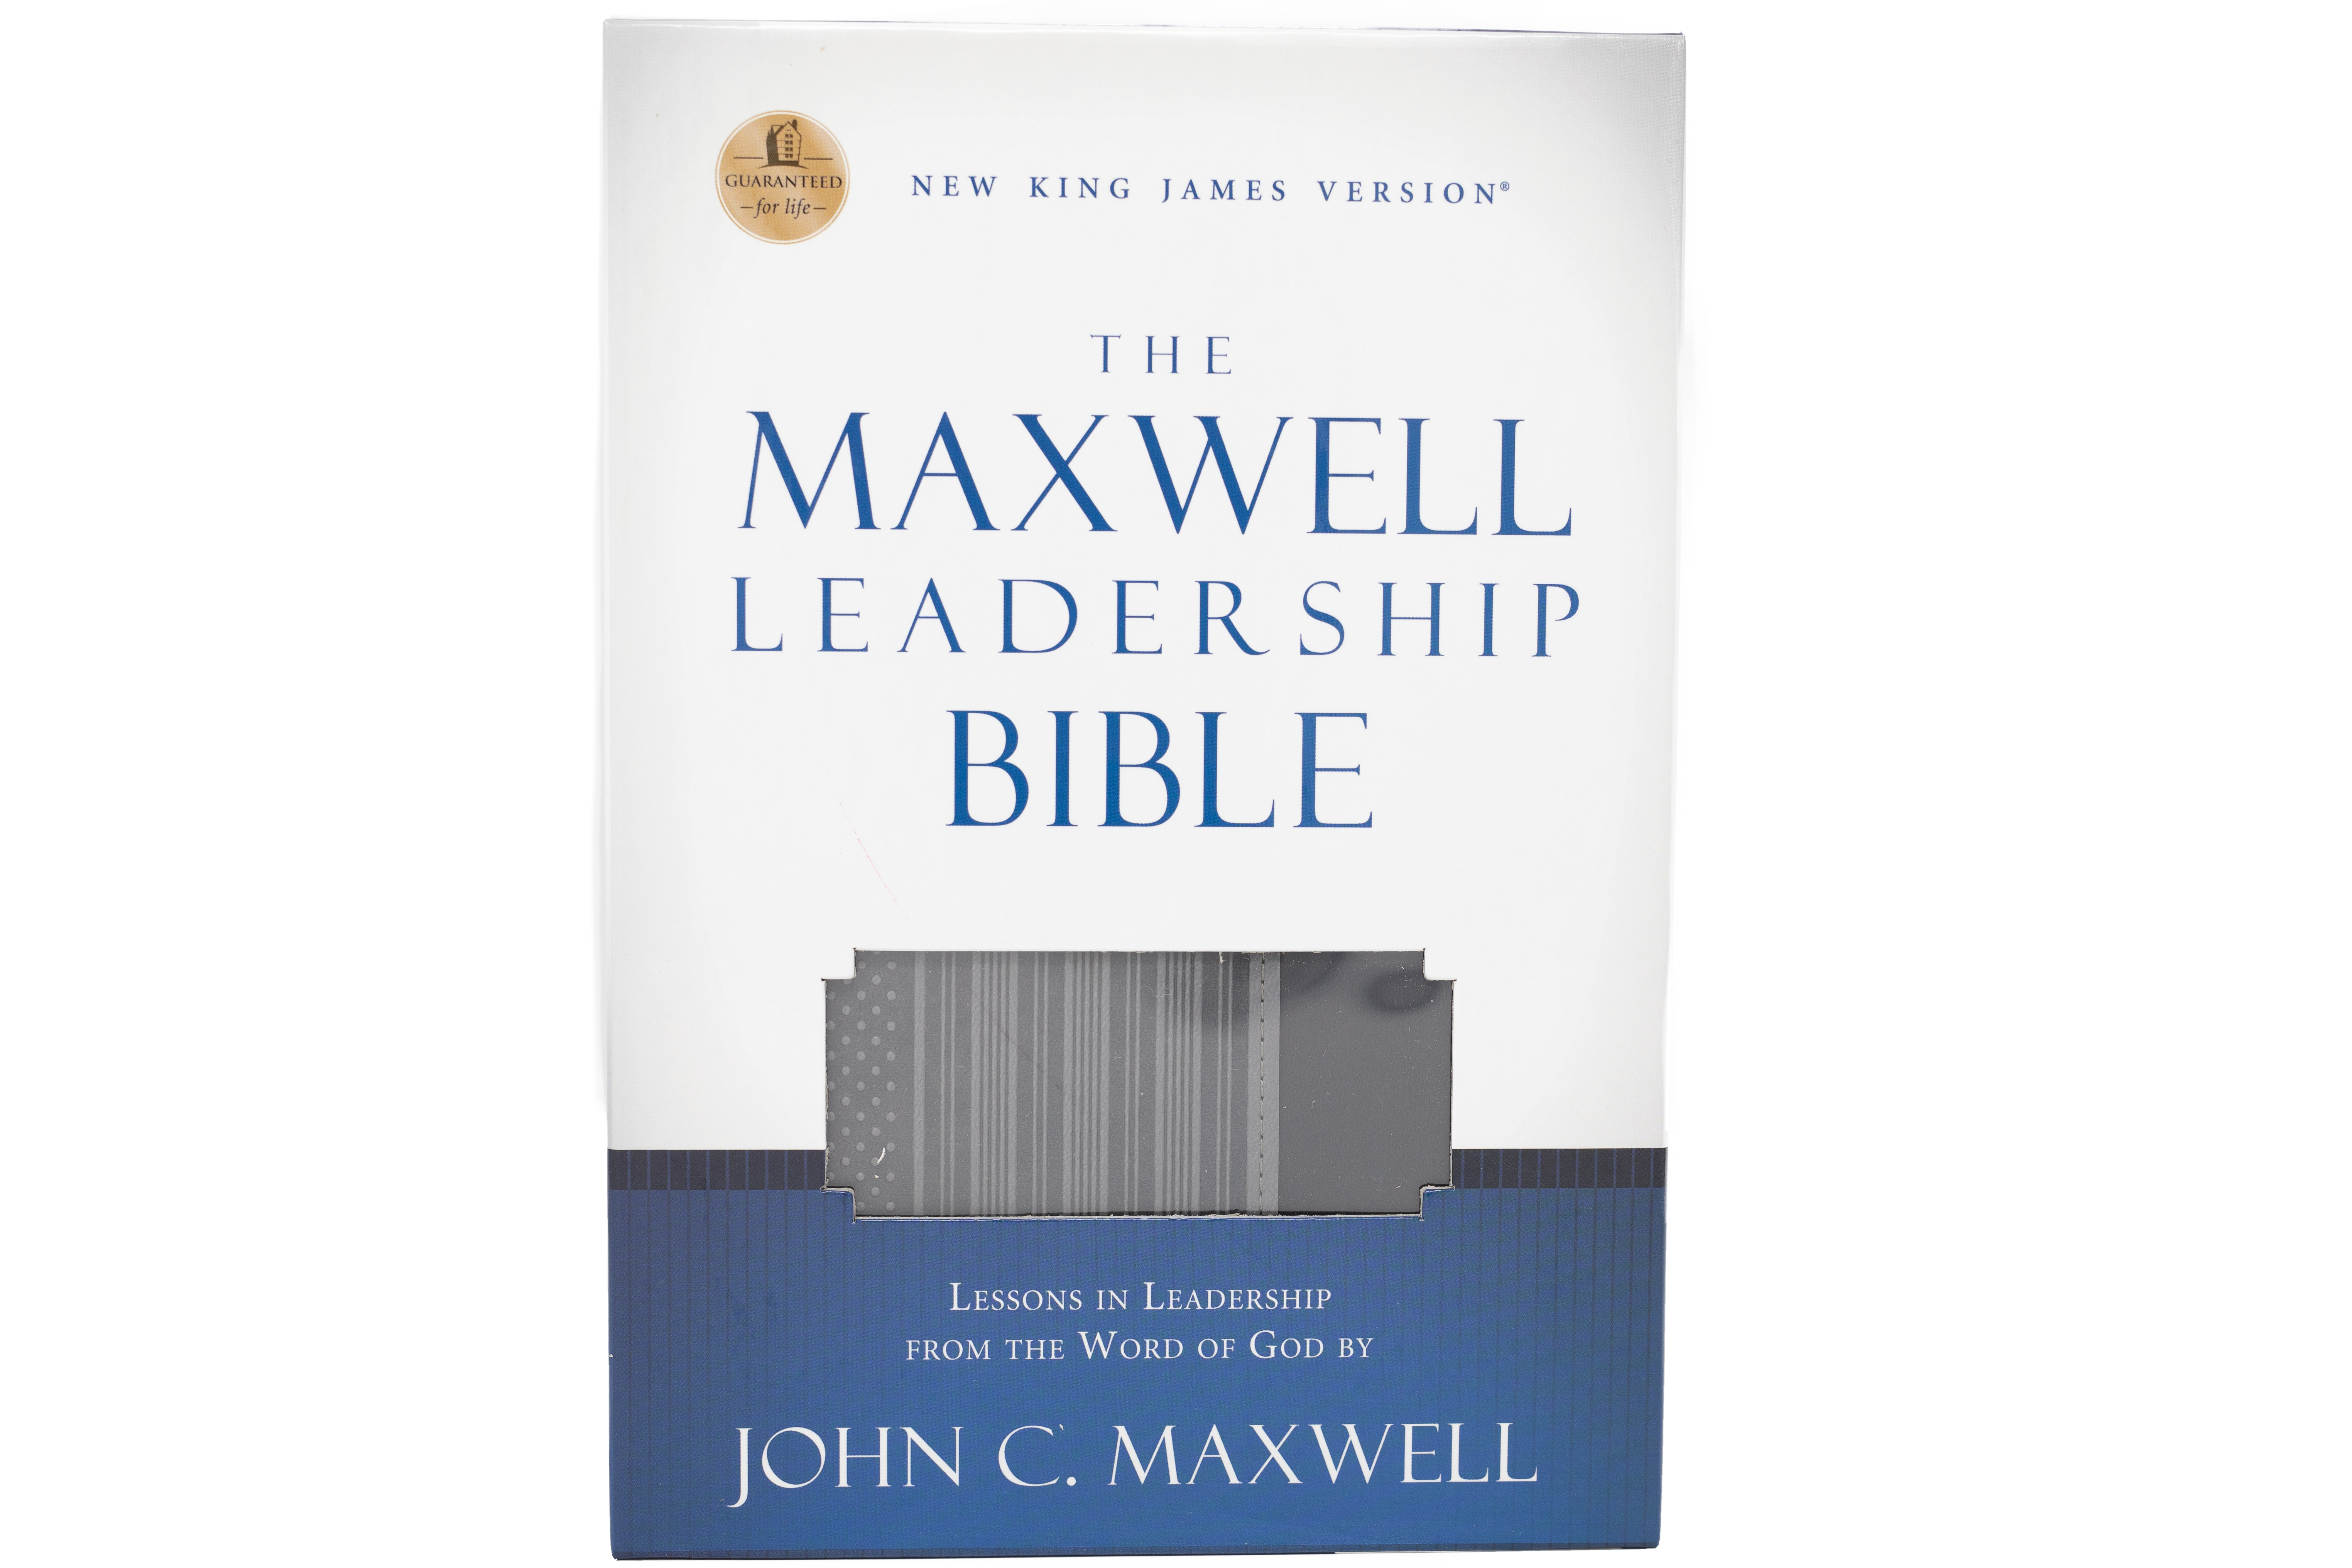 The Maxwell Leadership Bible - Leathersoft [NKJV]